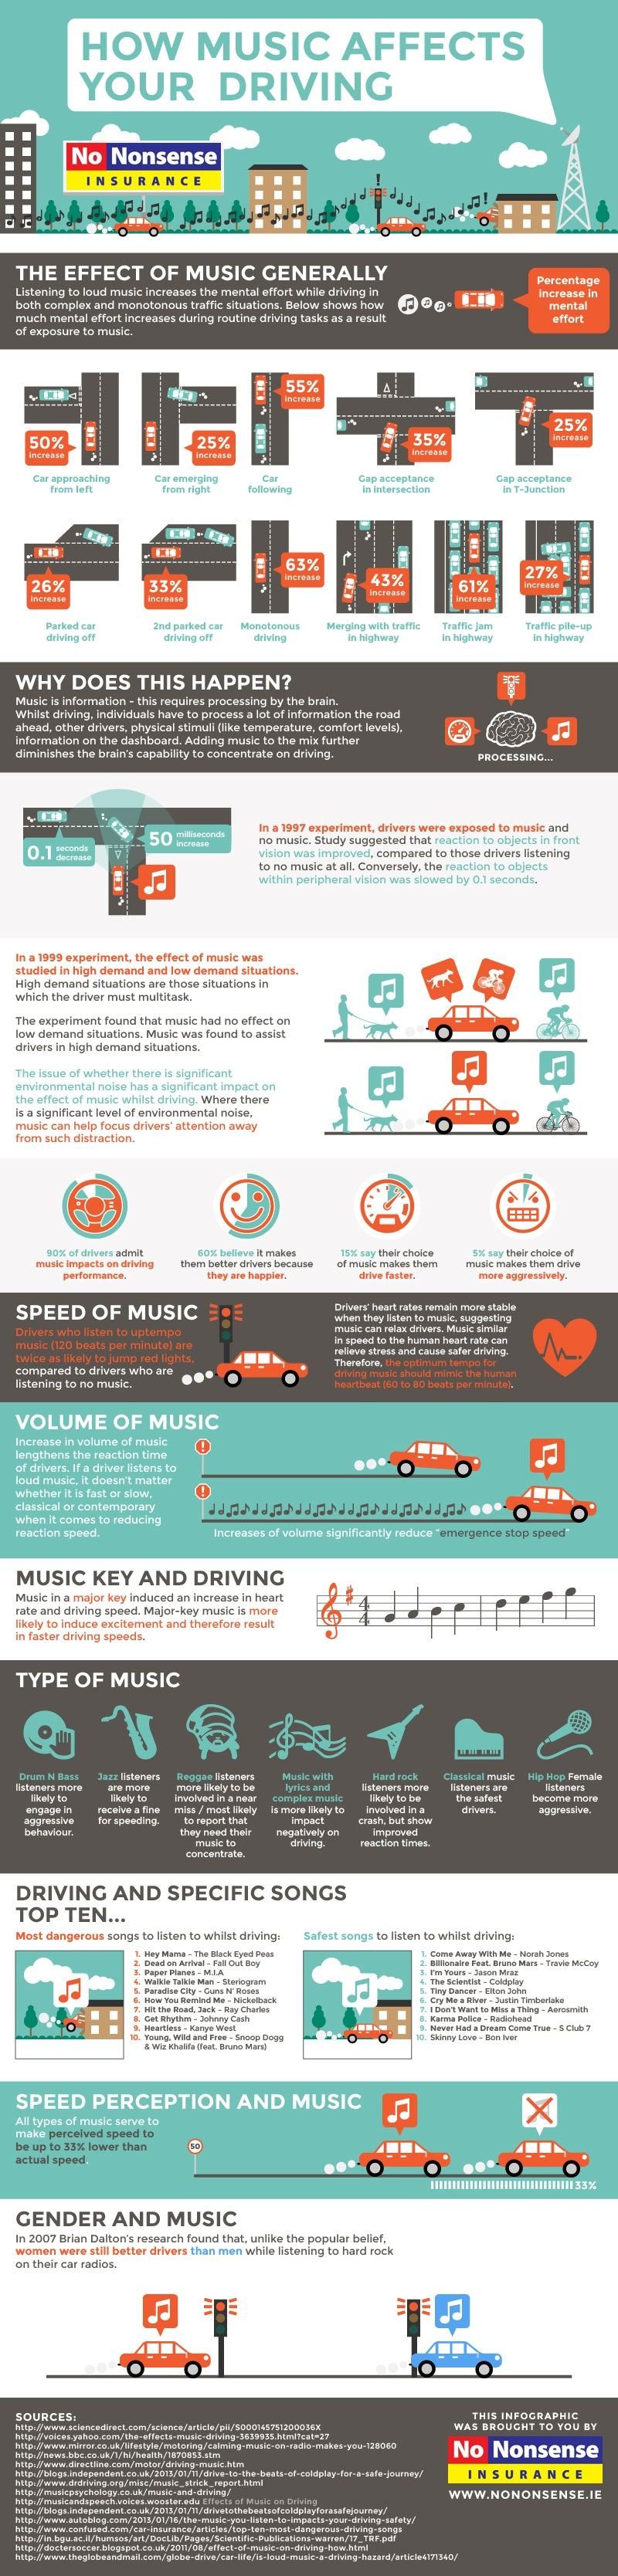 How Music Affects Your Driving [Infographic], via @HubSpot